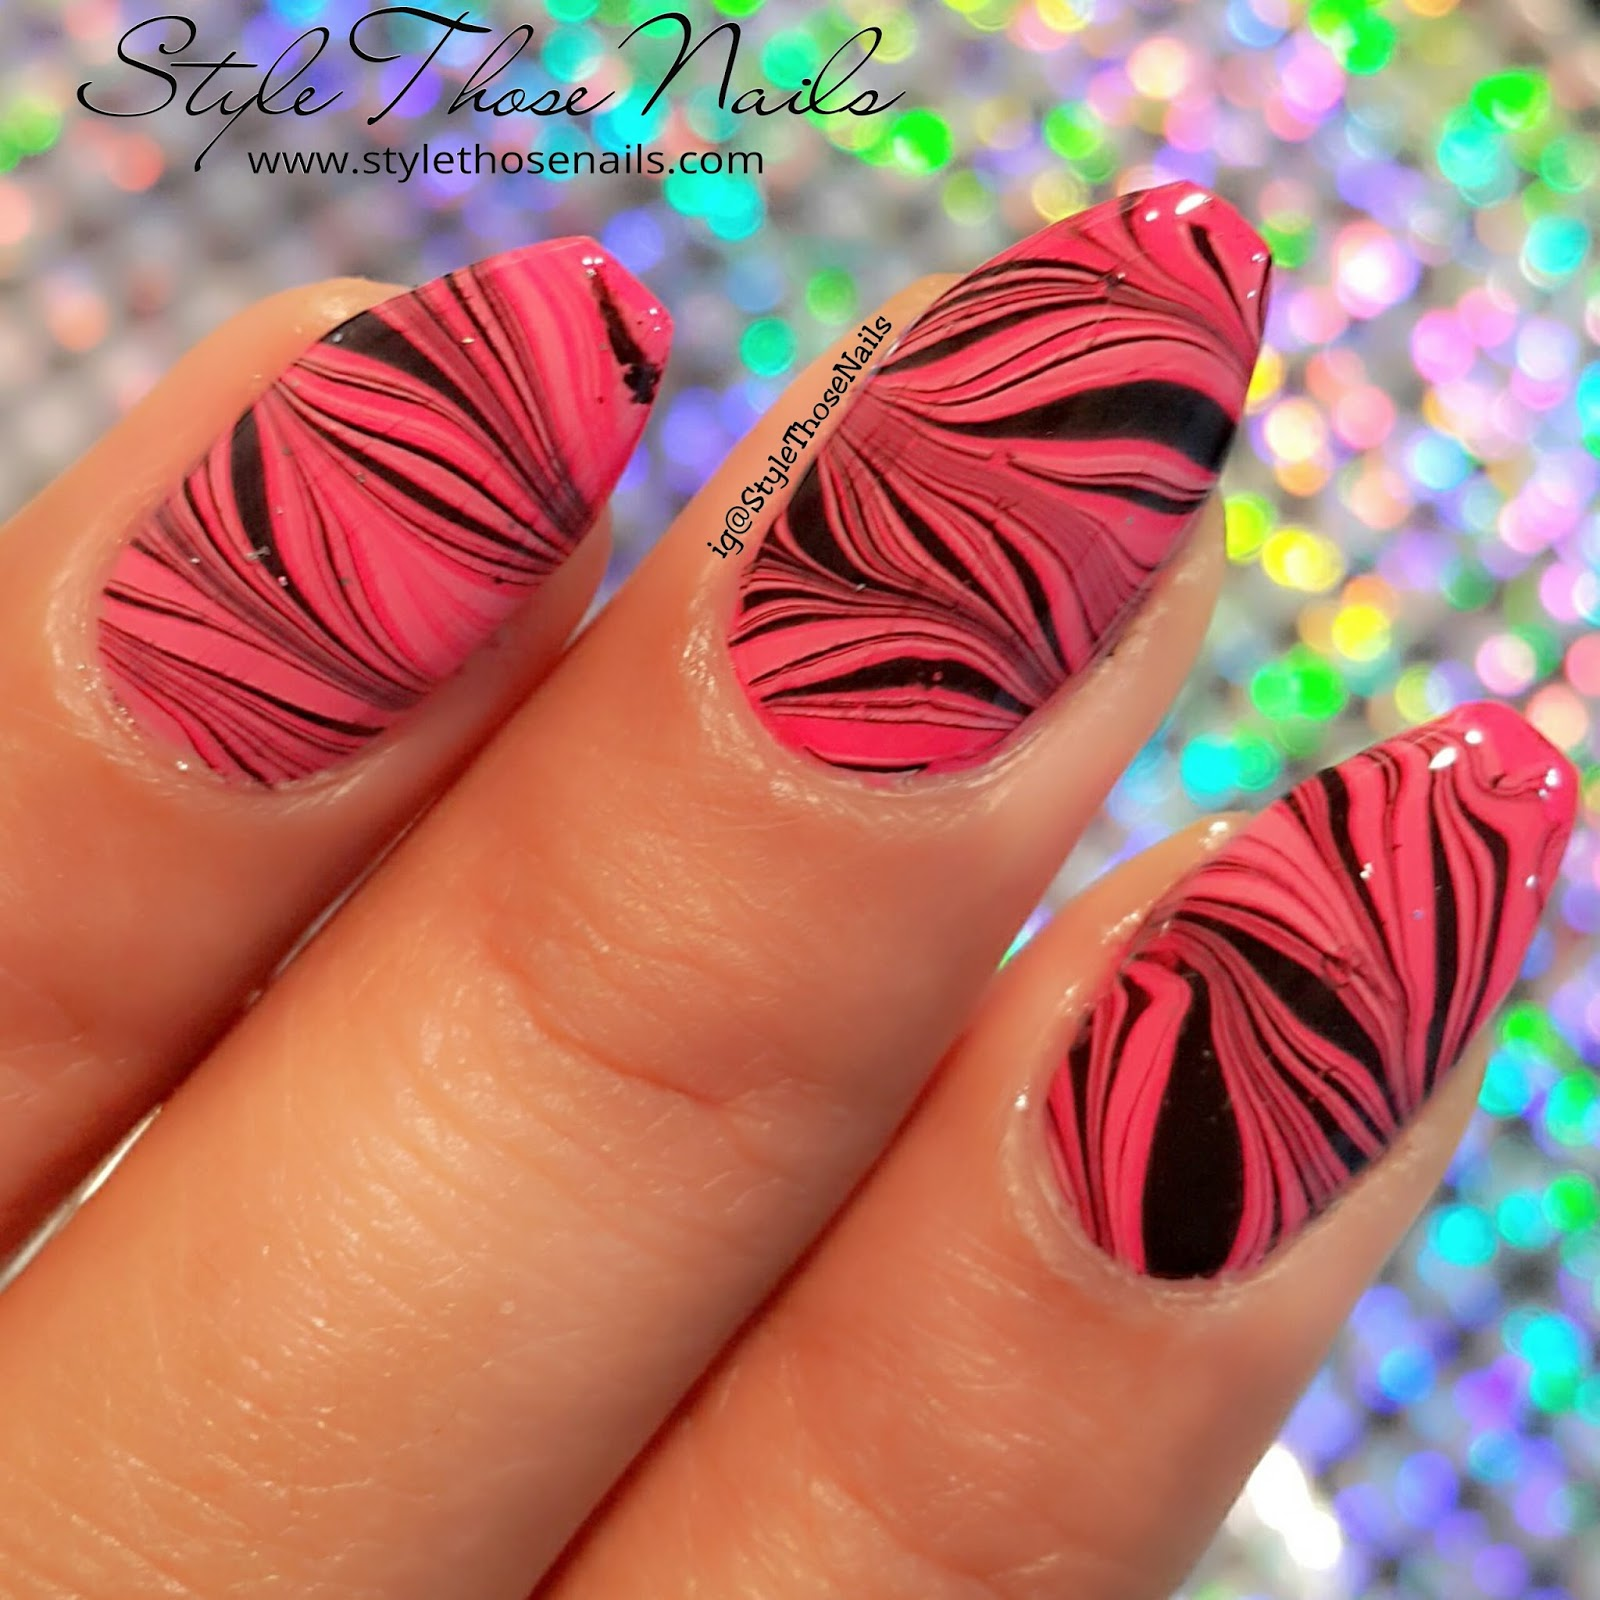 Style Those Nails: Water Marble Nail Collaboration